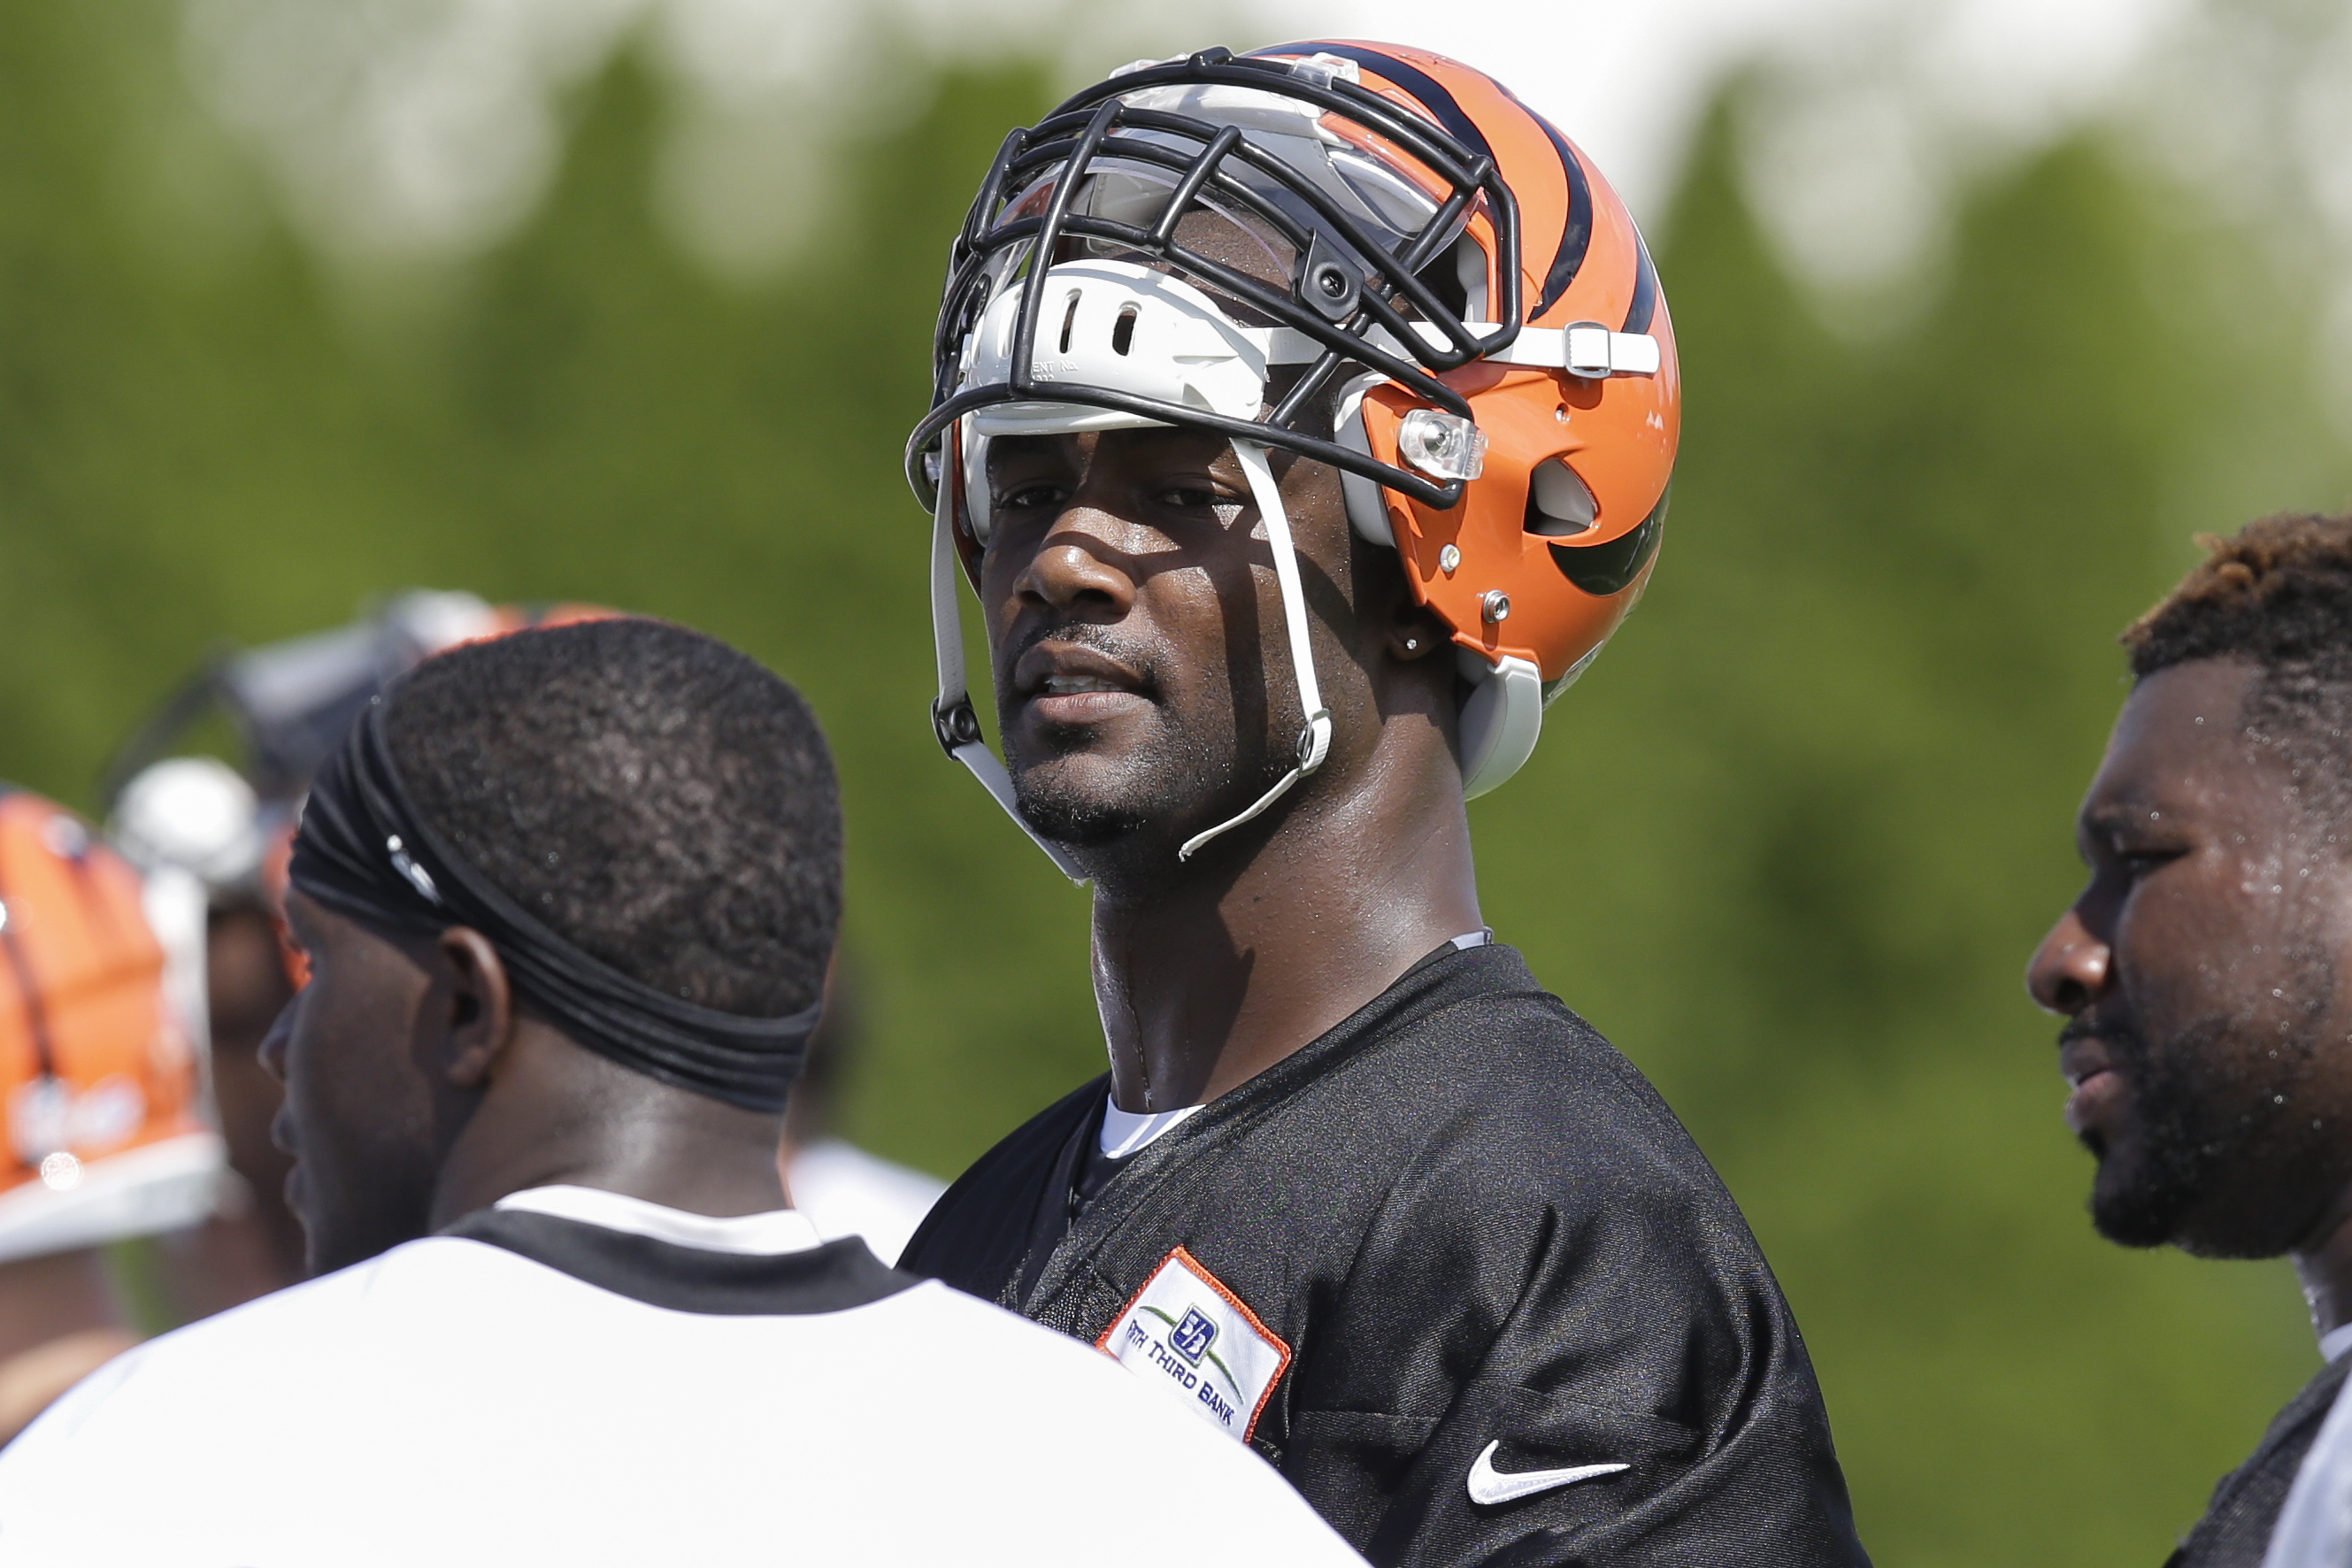 Cincinnati Bengals defensive end Michael Johnson participates in NFL football training camp, Saturday, Aug. 1, 2015, in Cincinnati. (AP Photo/John Minchillo)